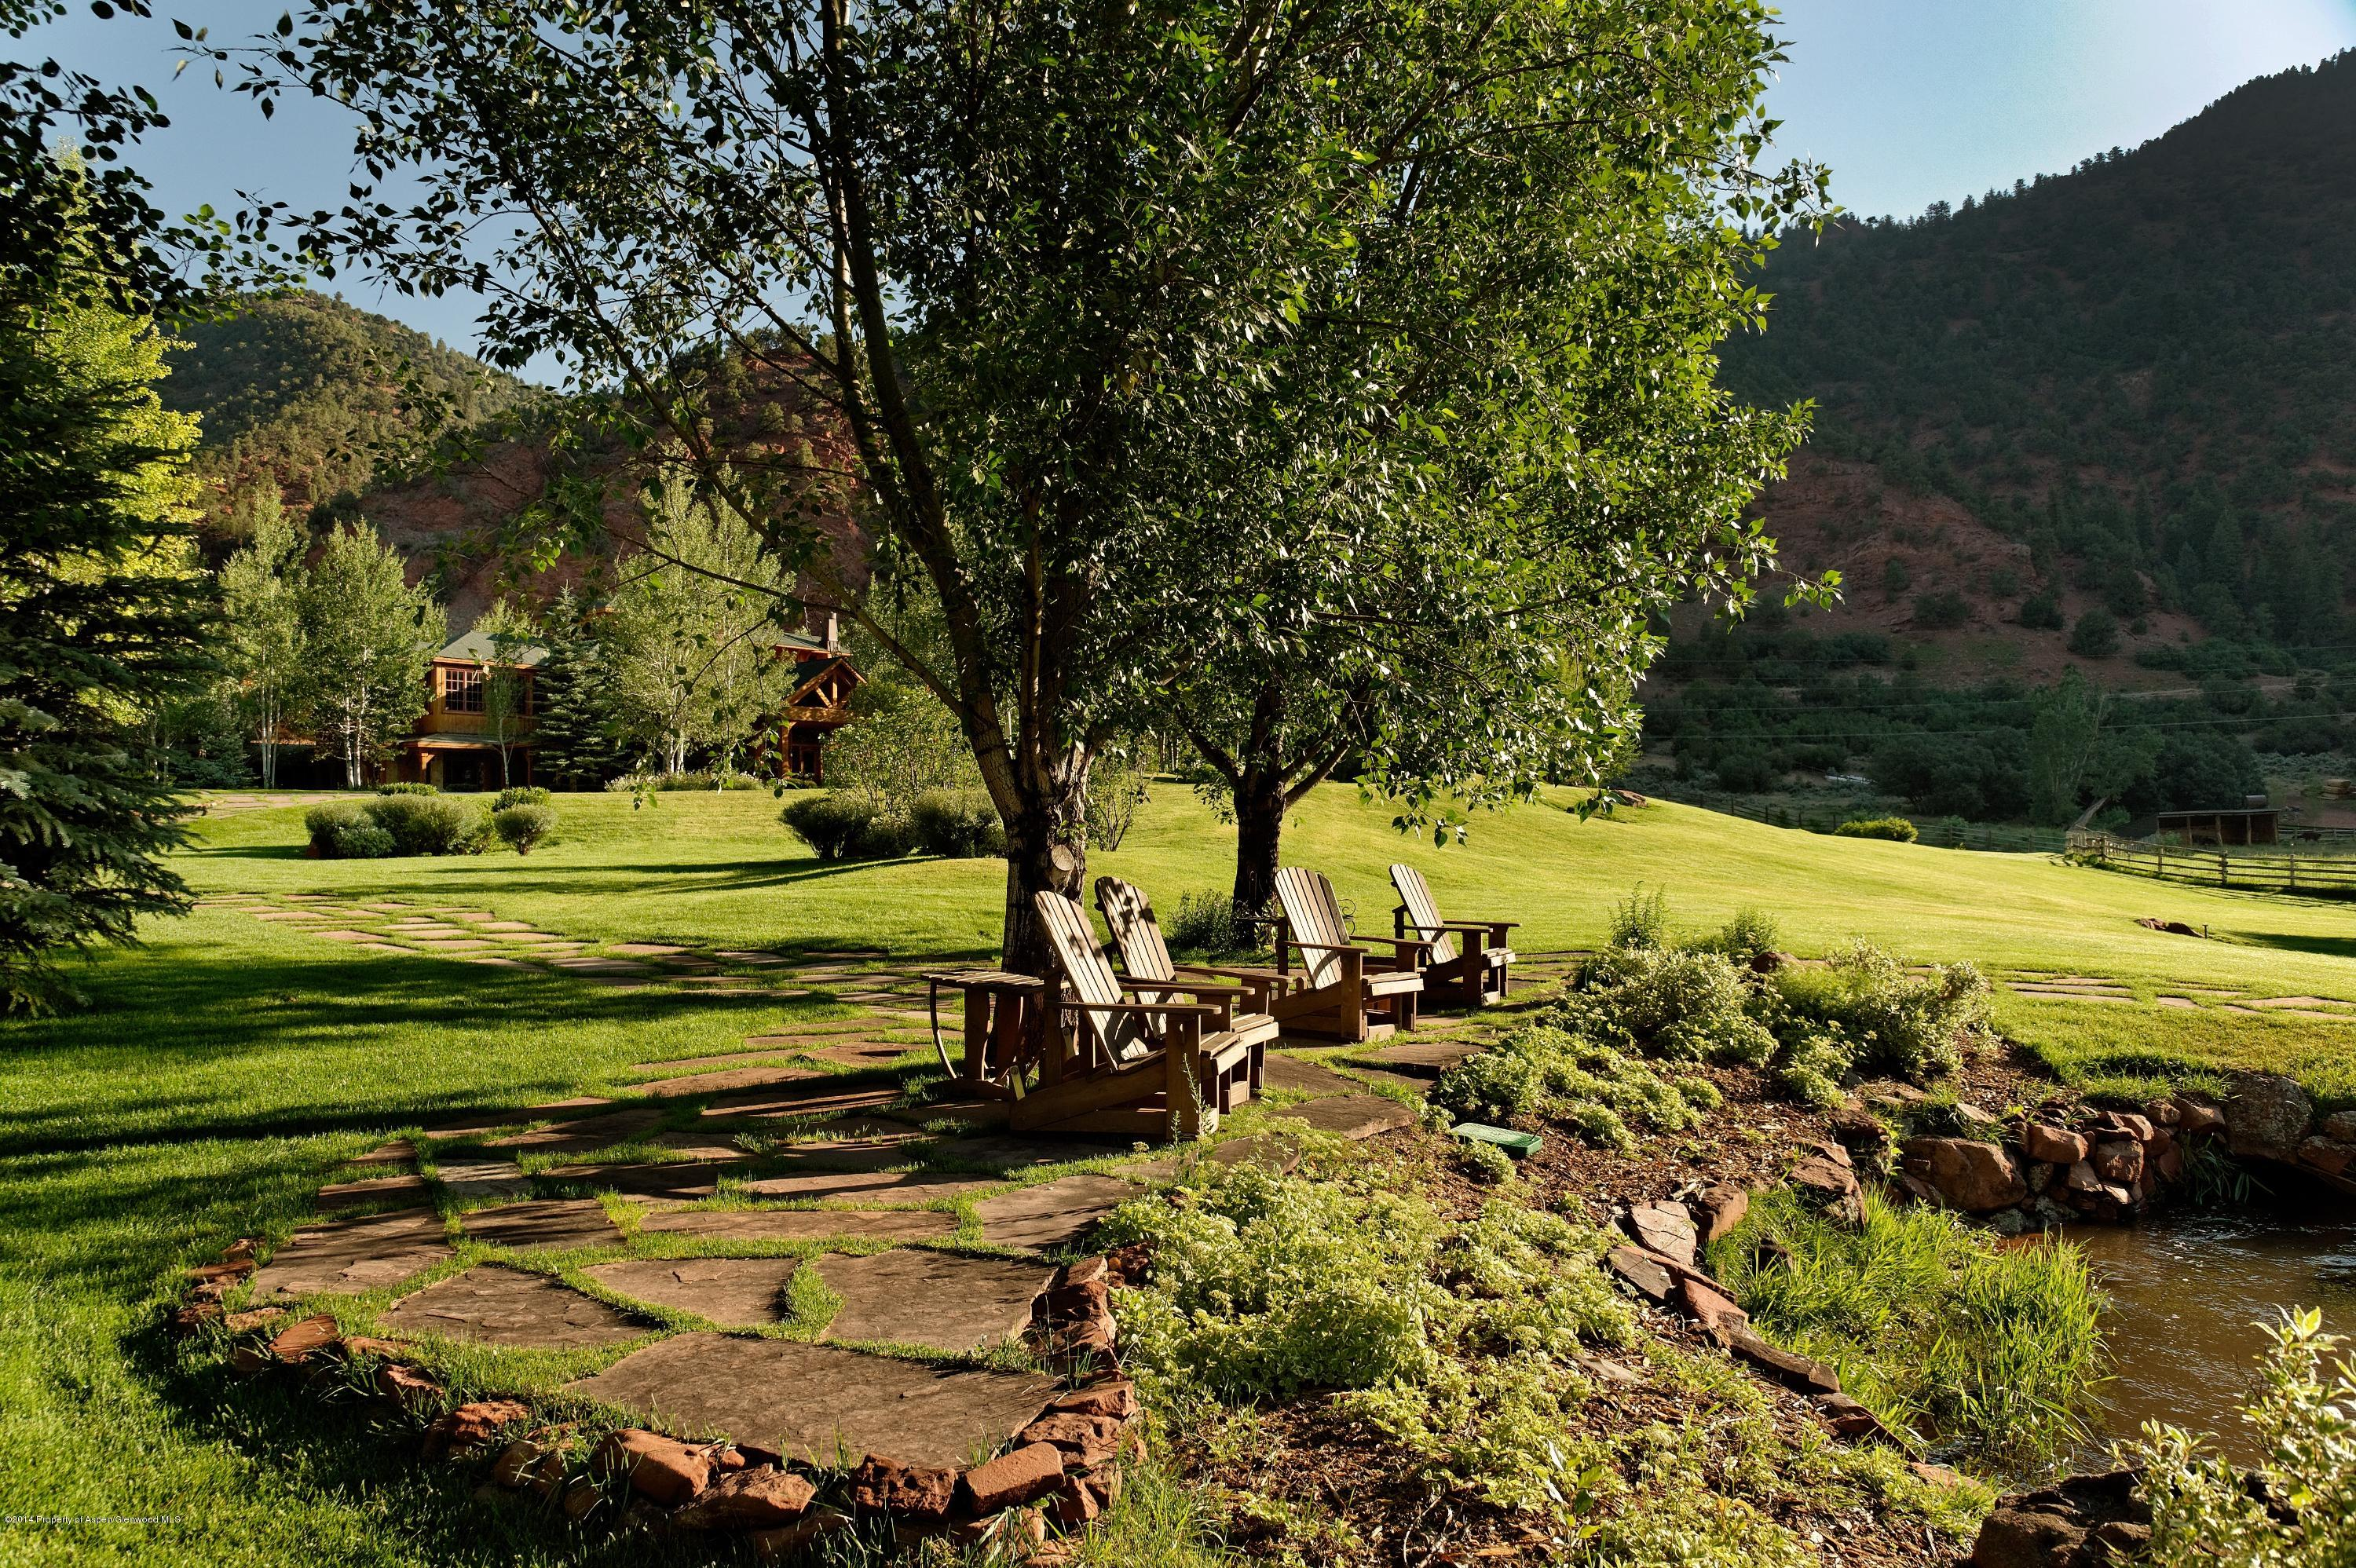 MLS# 135595 - 60 - 50 E River Ranch Road, Snowmass, CO 81654